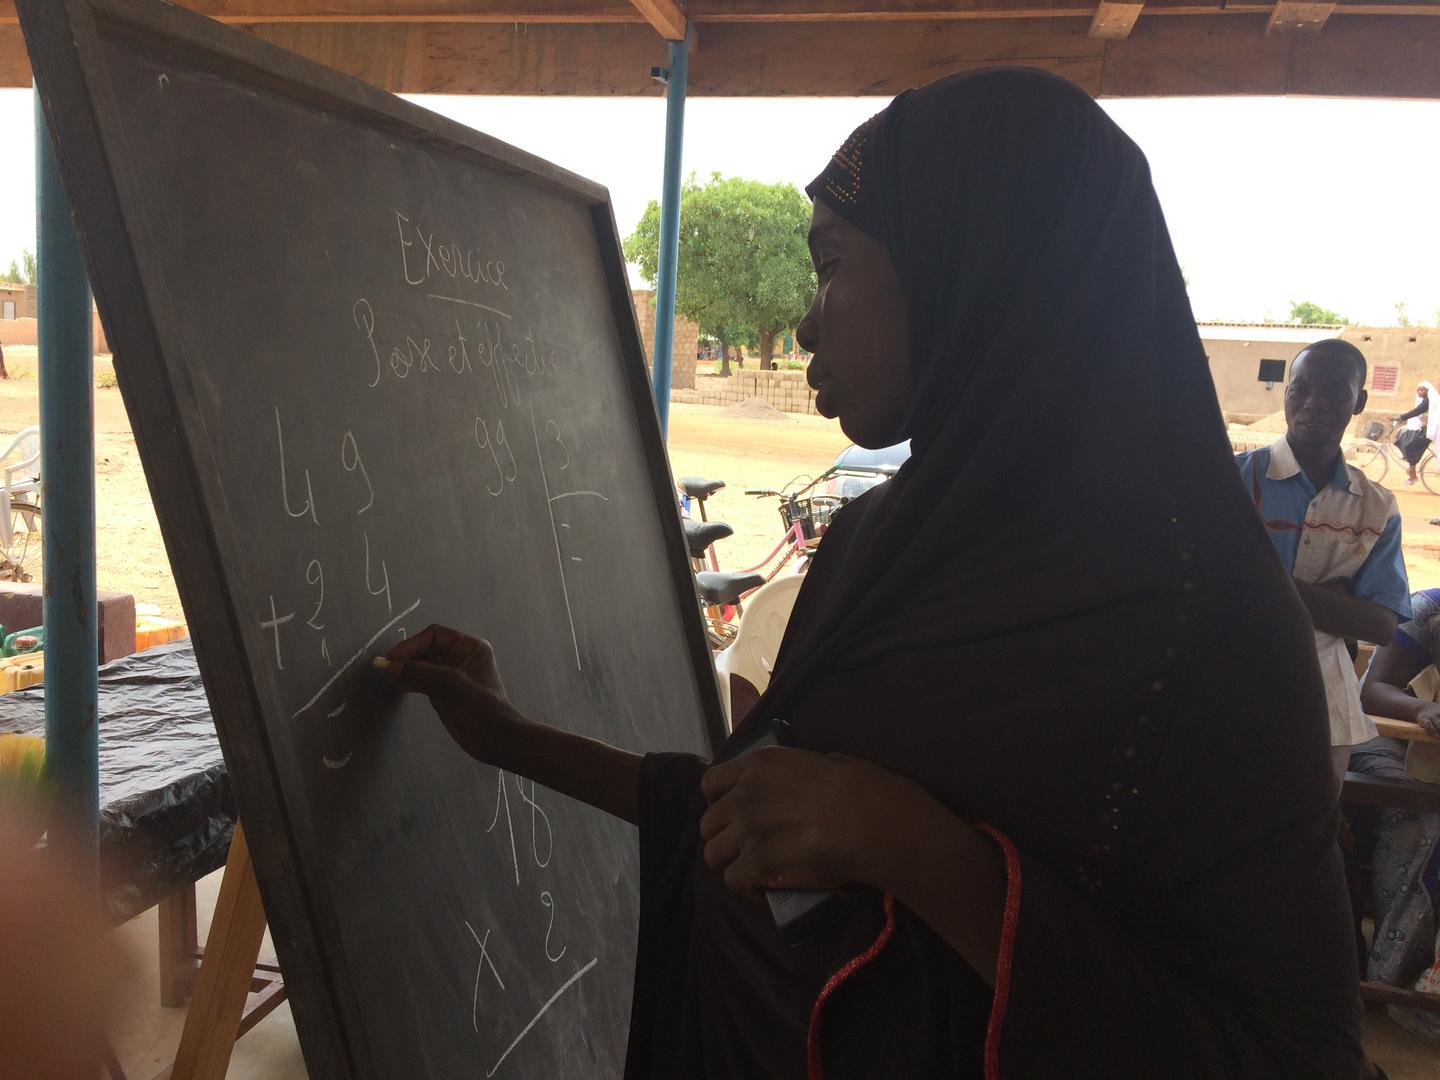 Salvation Army teaching literacy skills in Burkina Faso